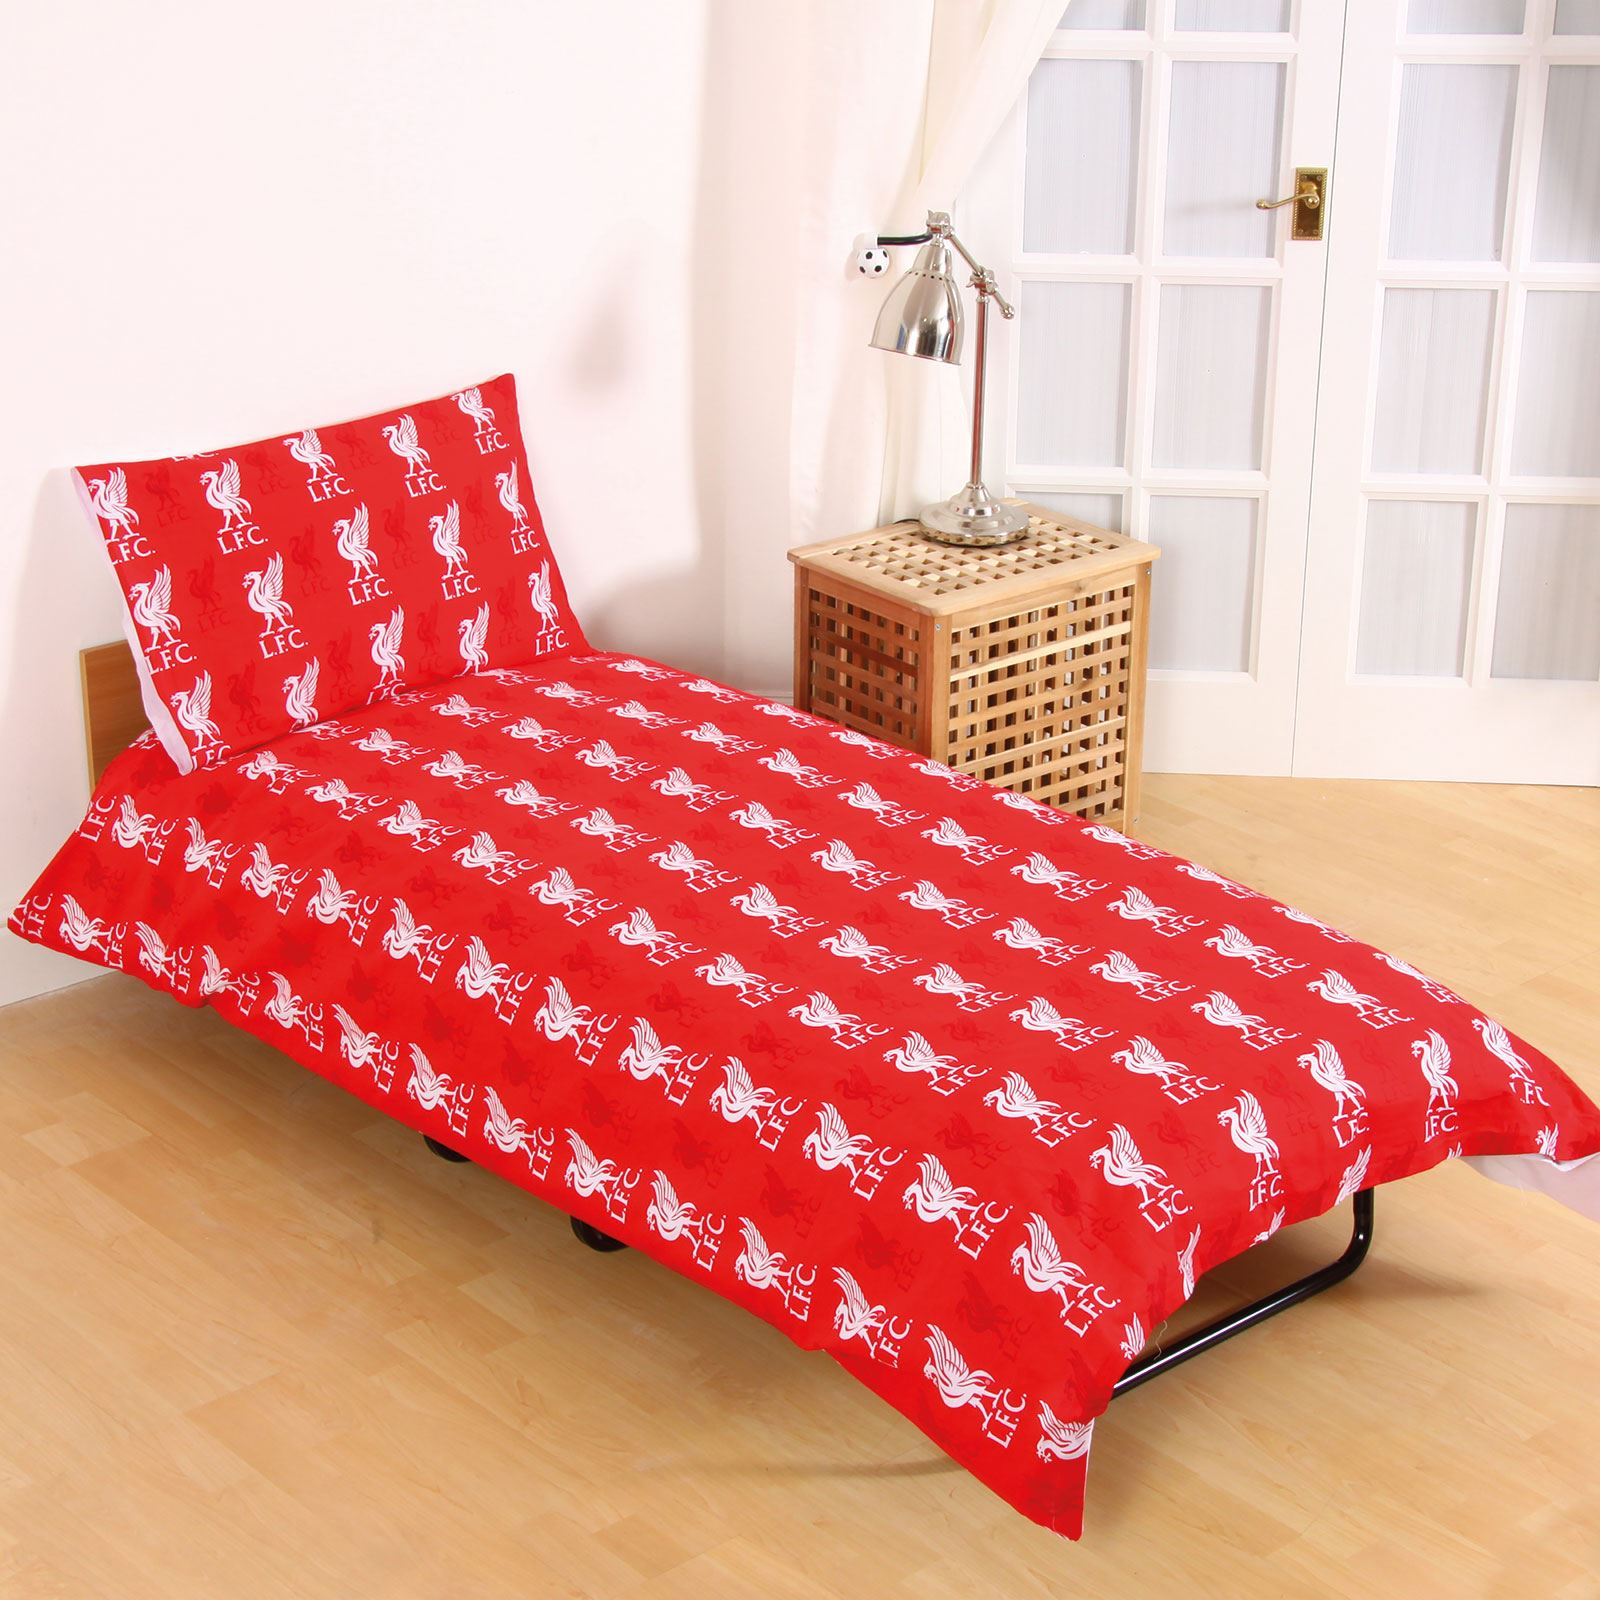 Liverpool Fc Bedroom Accessories Liverpool Fc Single And Double Duvet Cover Sets Bedroom Bedding